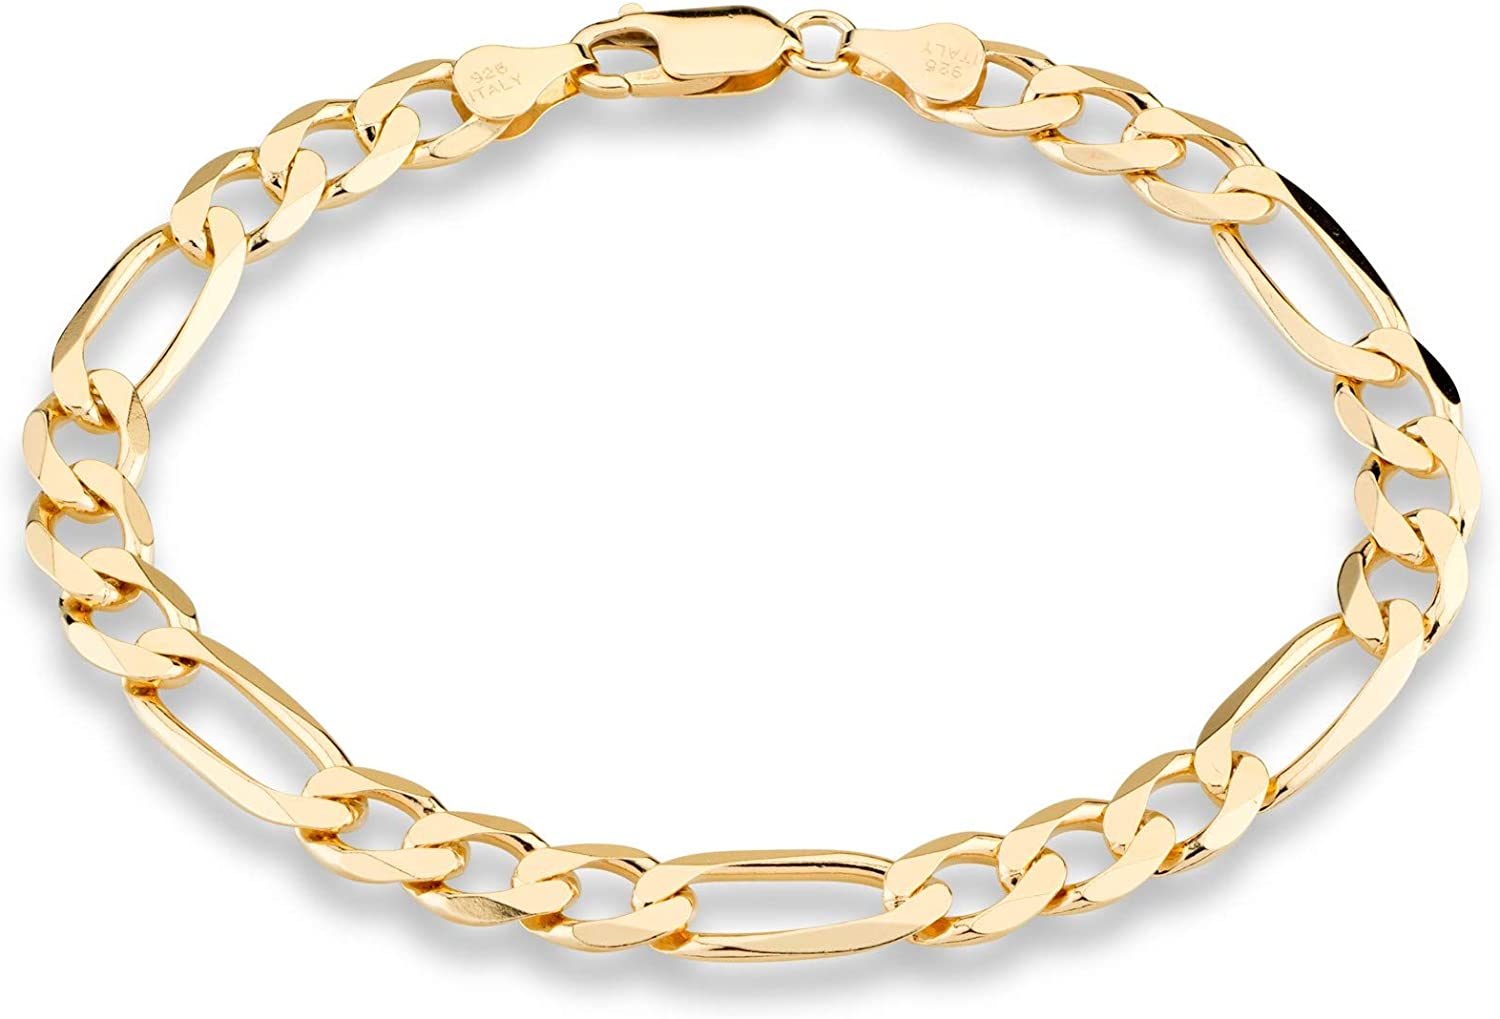 Miabella 18K Gold Over Sterling Silver Italian 7mm Solid Diamond-Cut Figaro Link Chain Bracelet for Men 7, 7.5, 8, 8.5, 9 Inch 925 Made in Italy